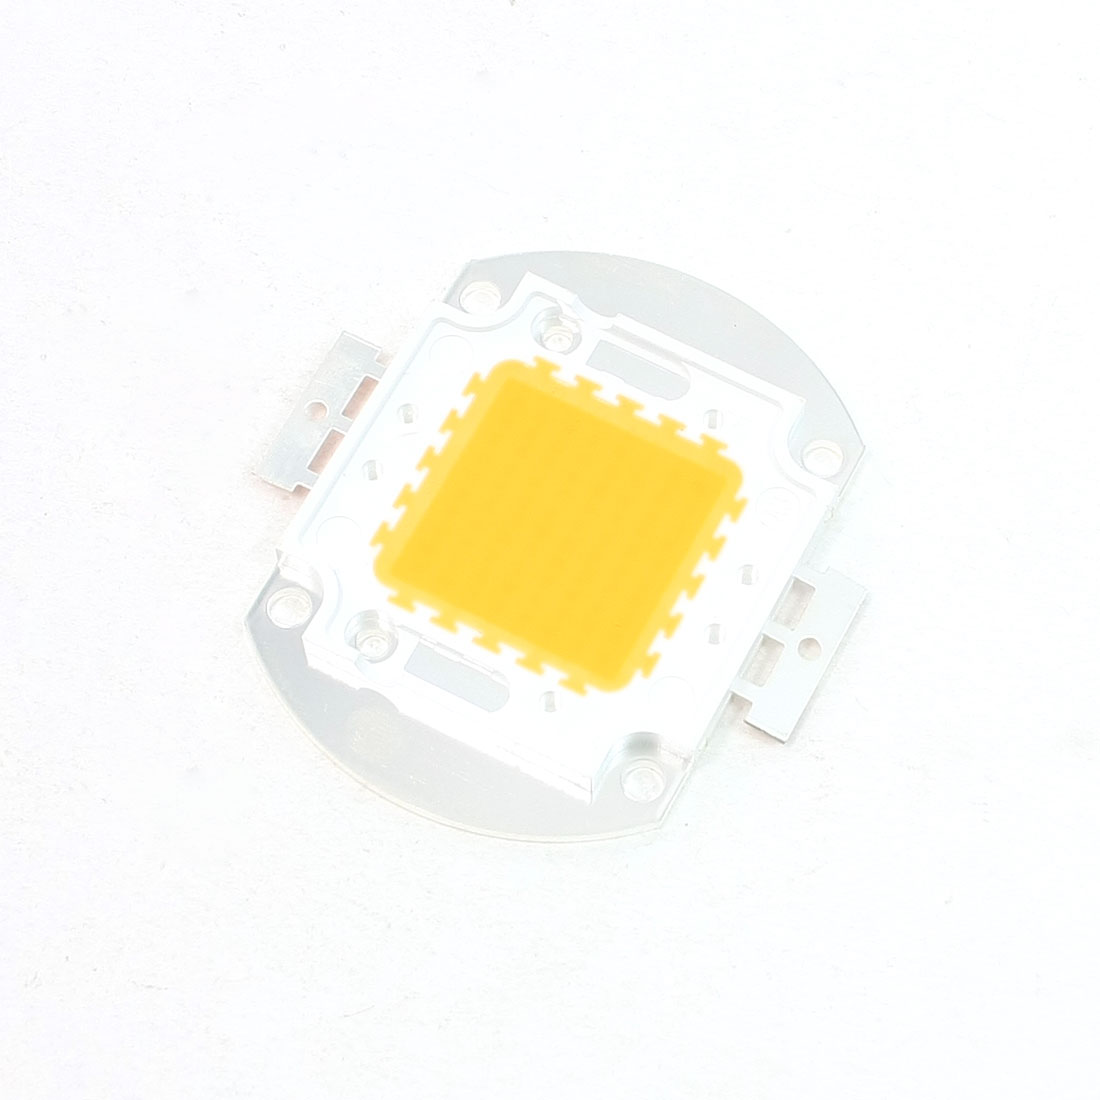 7500-8500LM 2850-3050K 80W High Power Warm White 8x10 IC LED Lamp Blub Beads